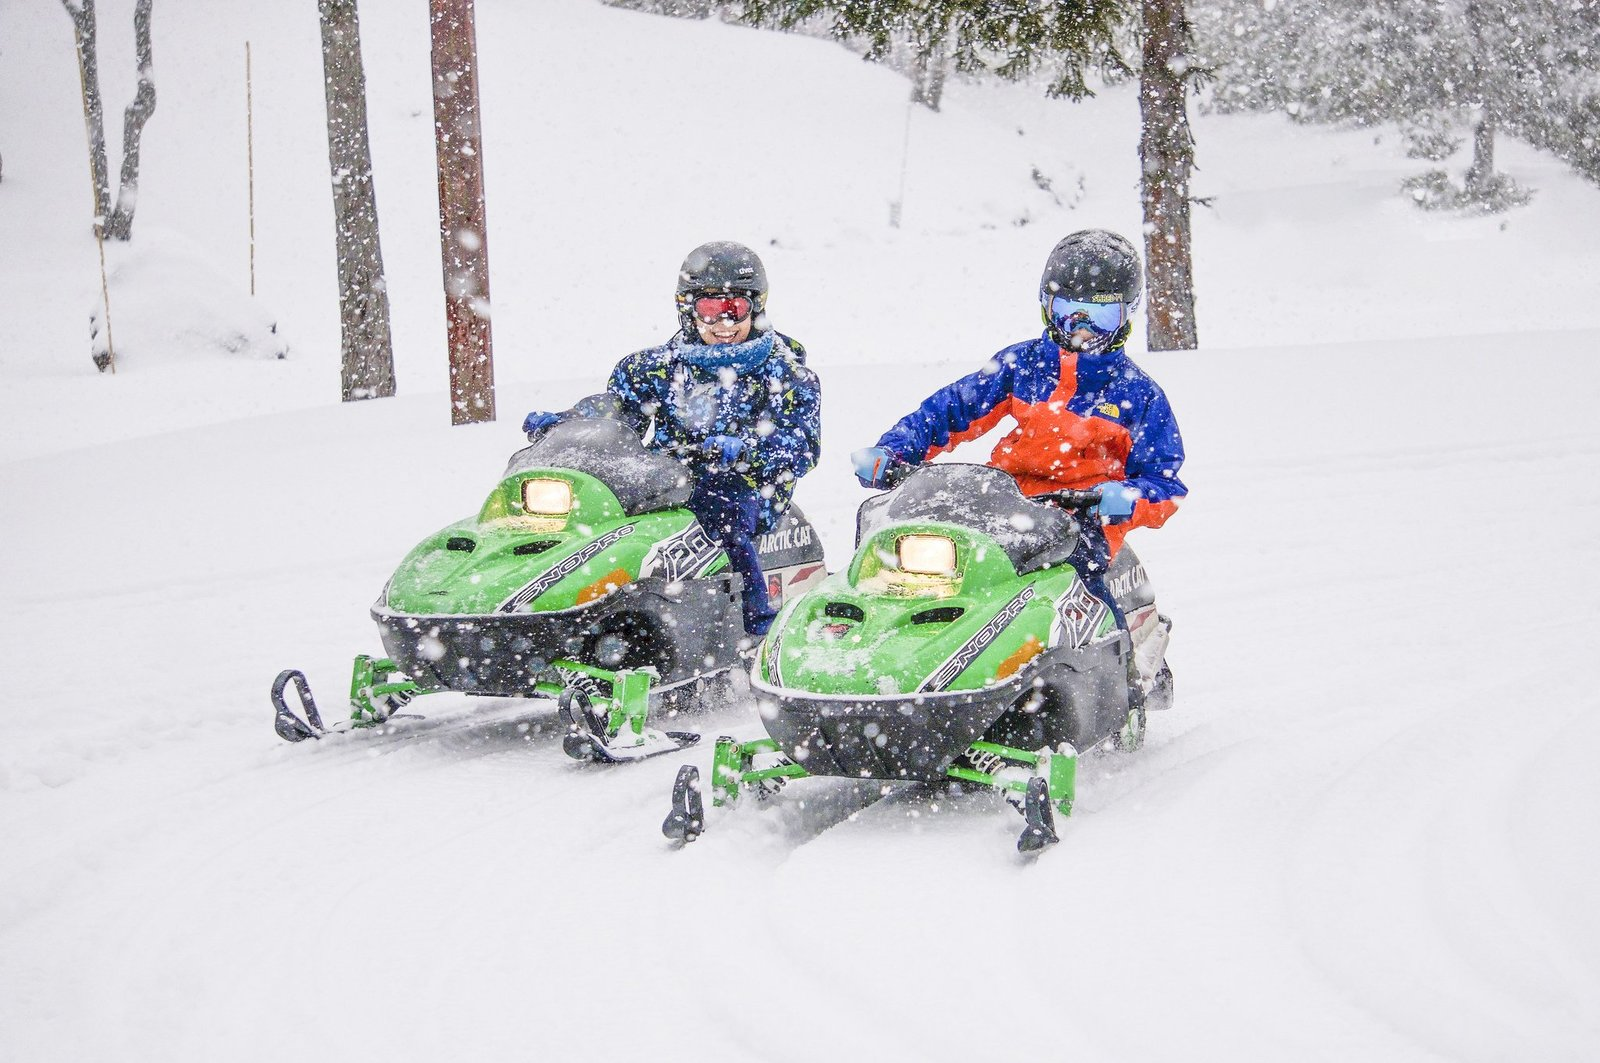 Two boys racing on kids snowmobiles in Hanazono, Niseko